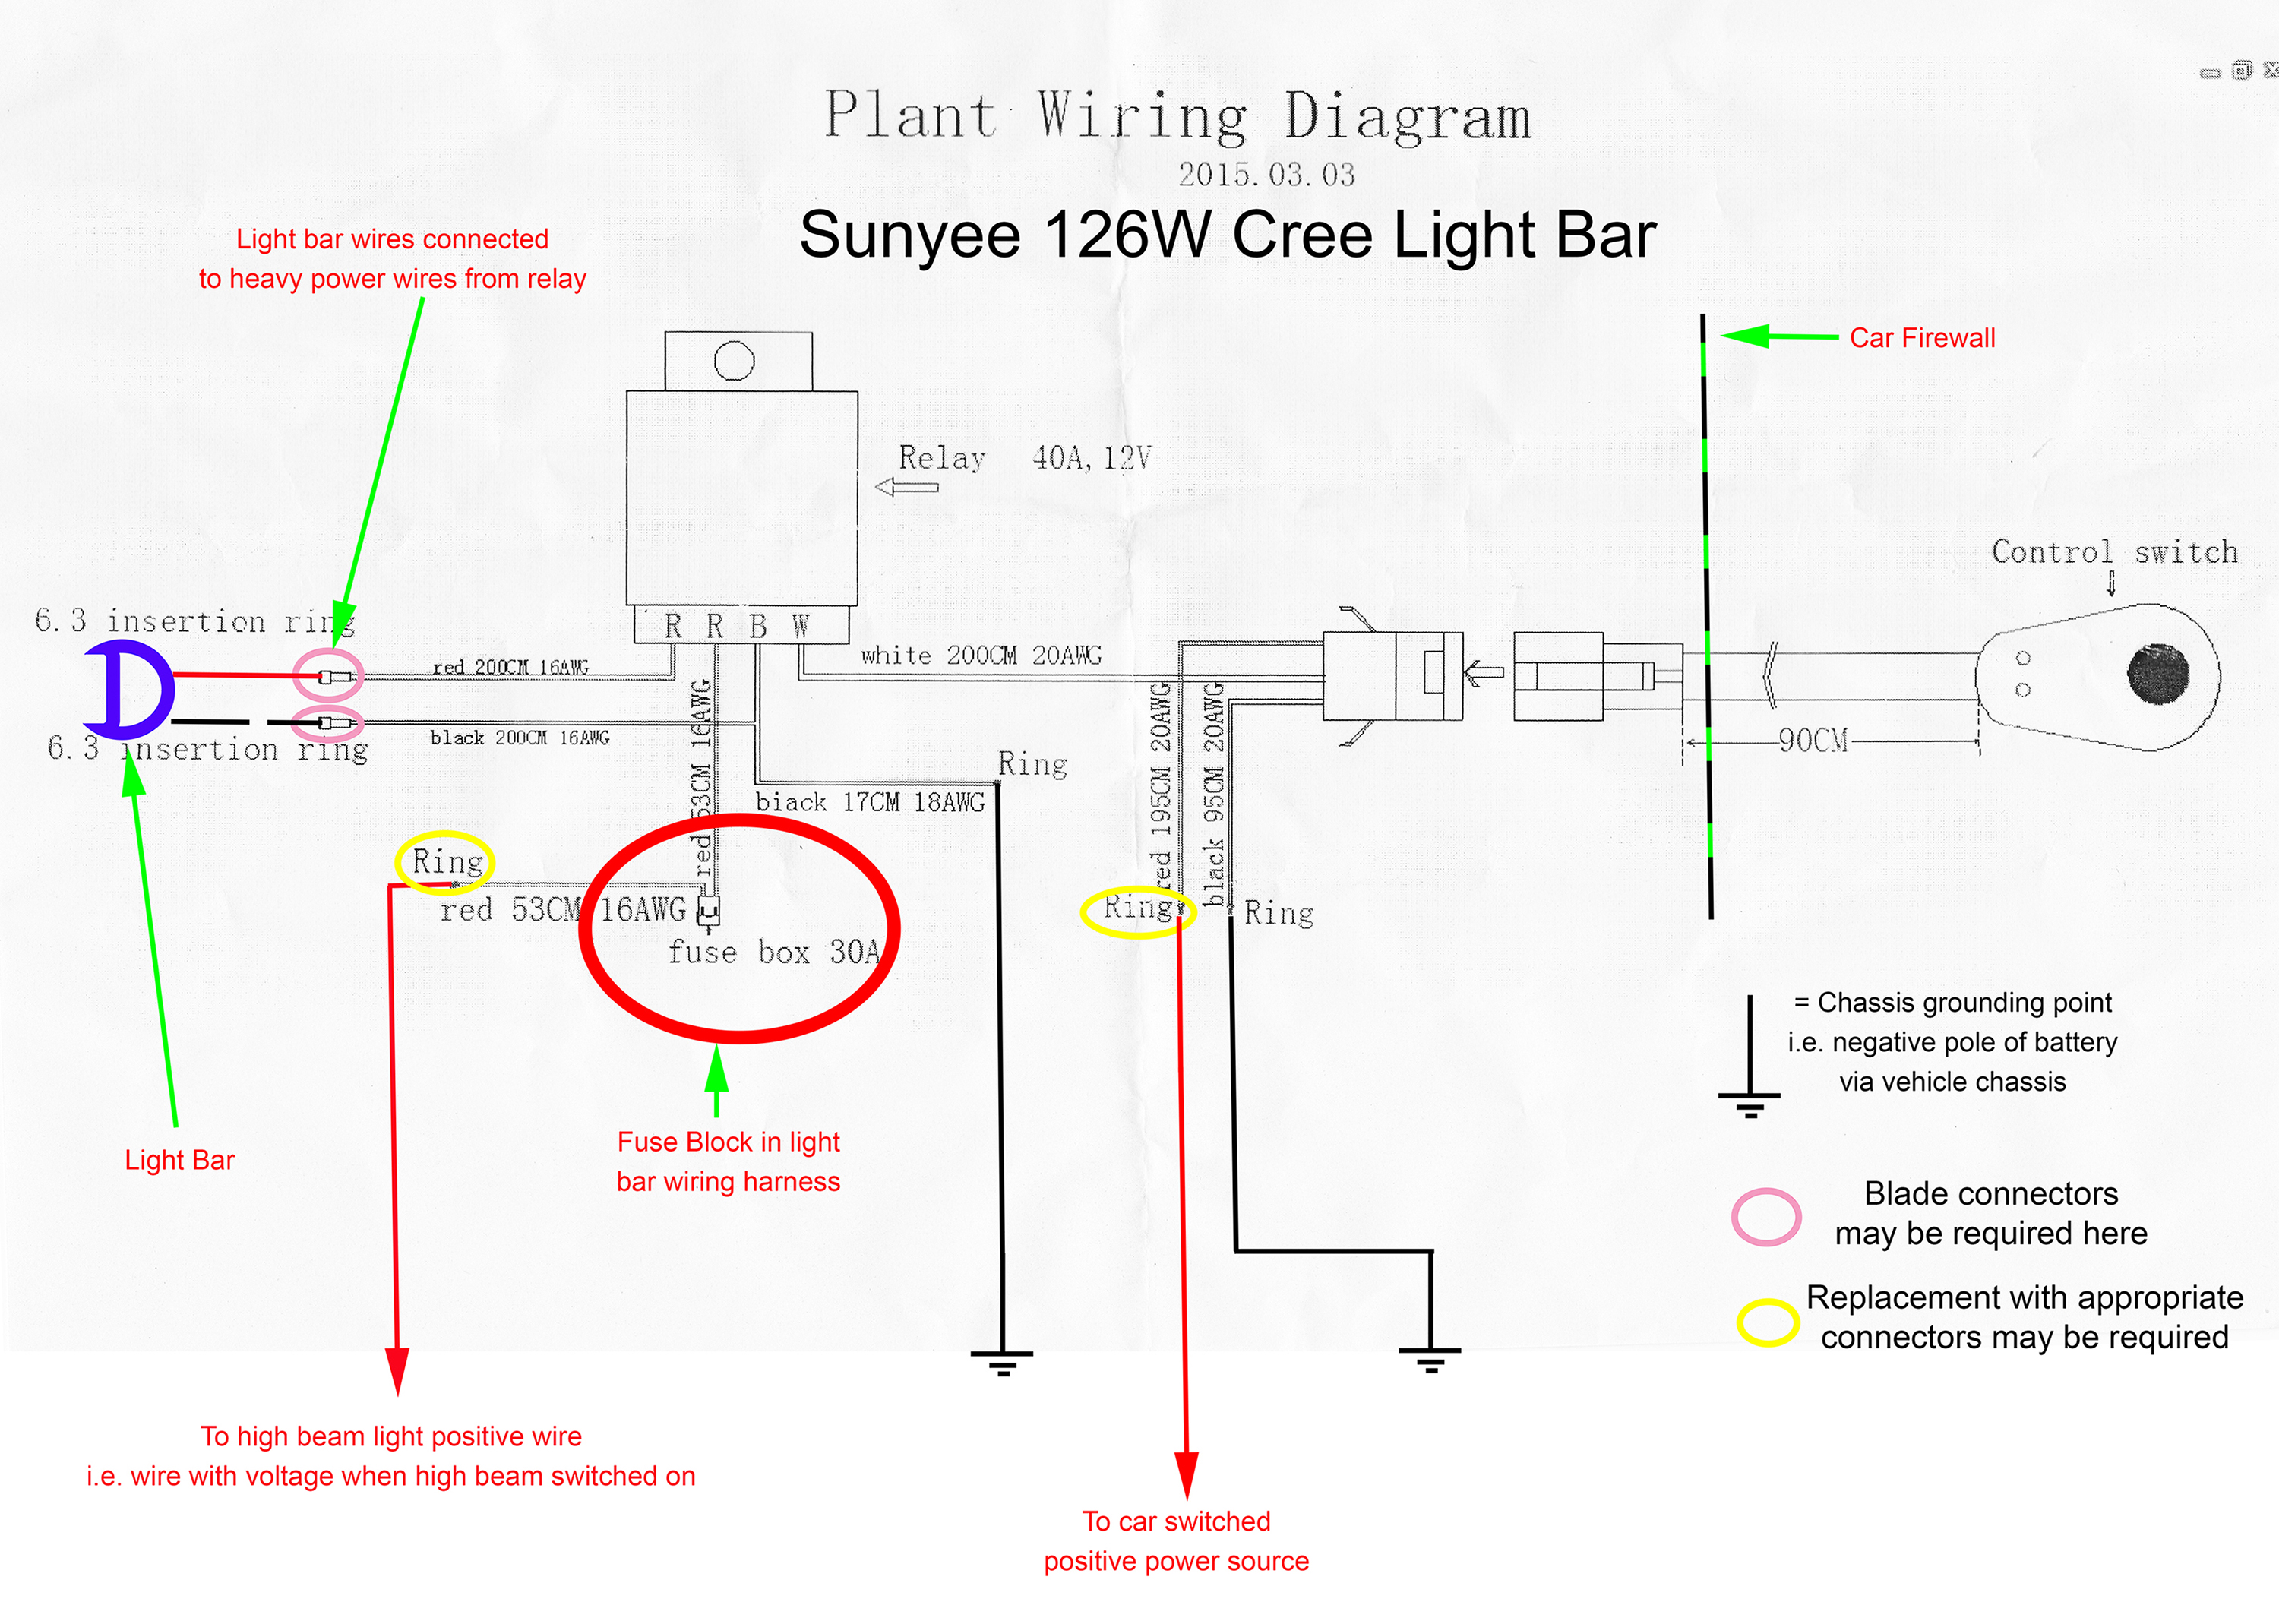 wiring diagram light switch pdf the wiring diagram install sunyee cree 126w light bar sg ii forester page 3 wiring diagram